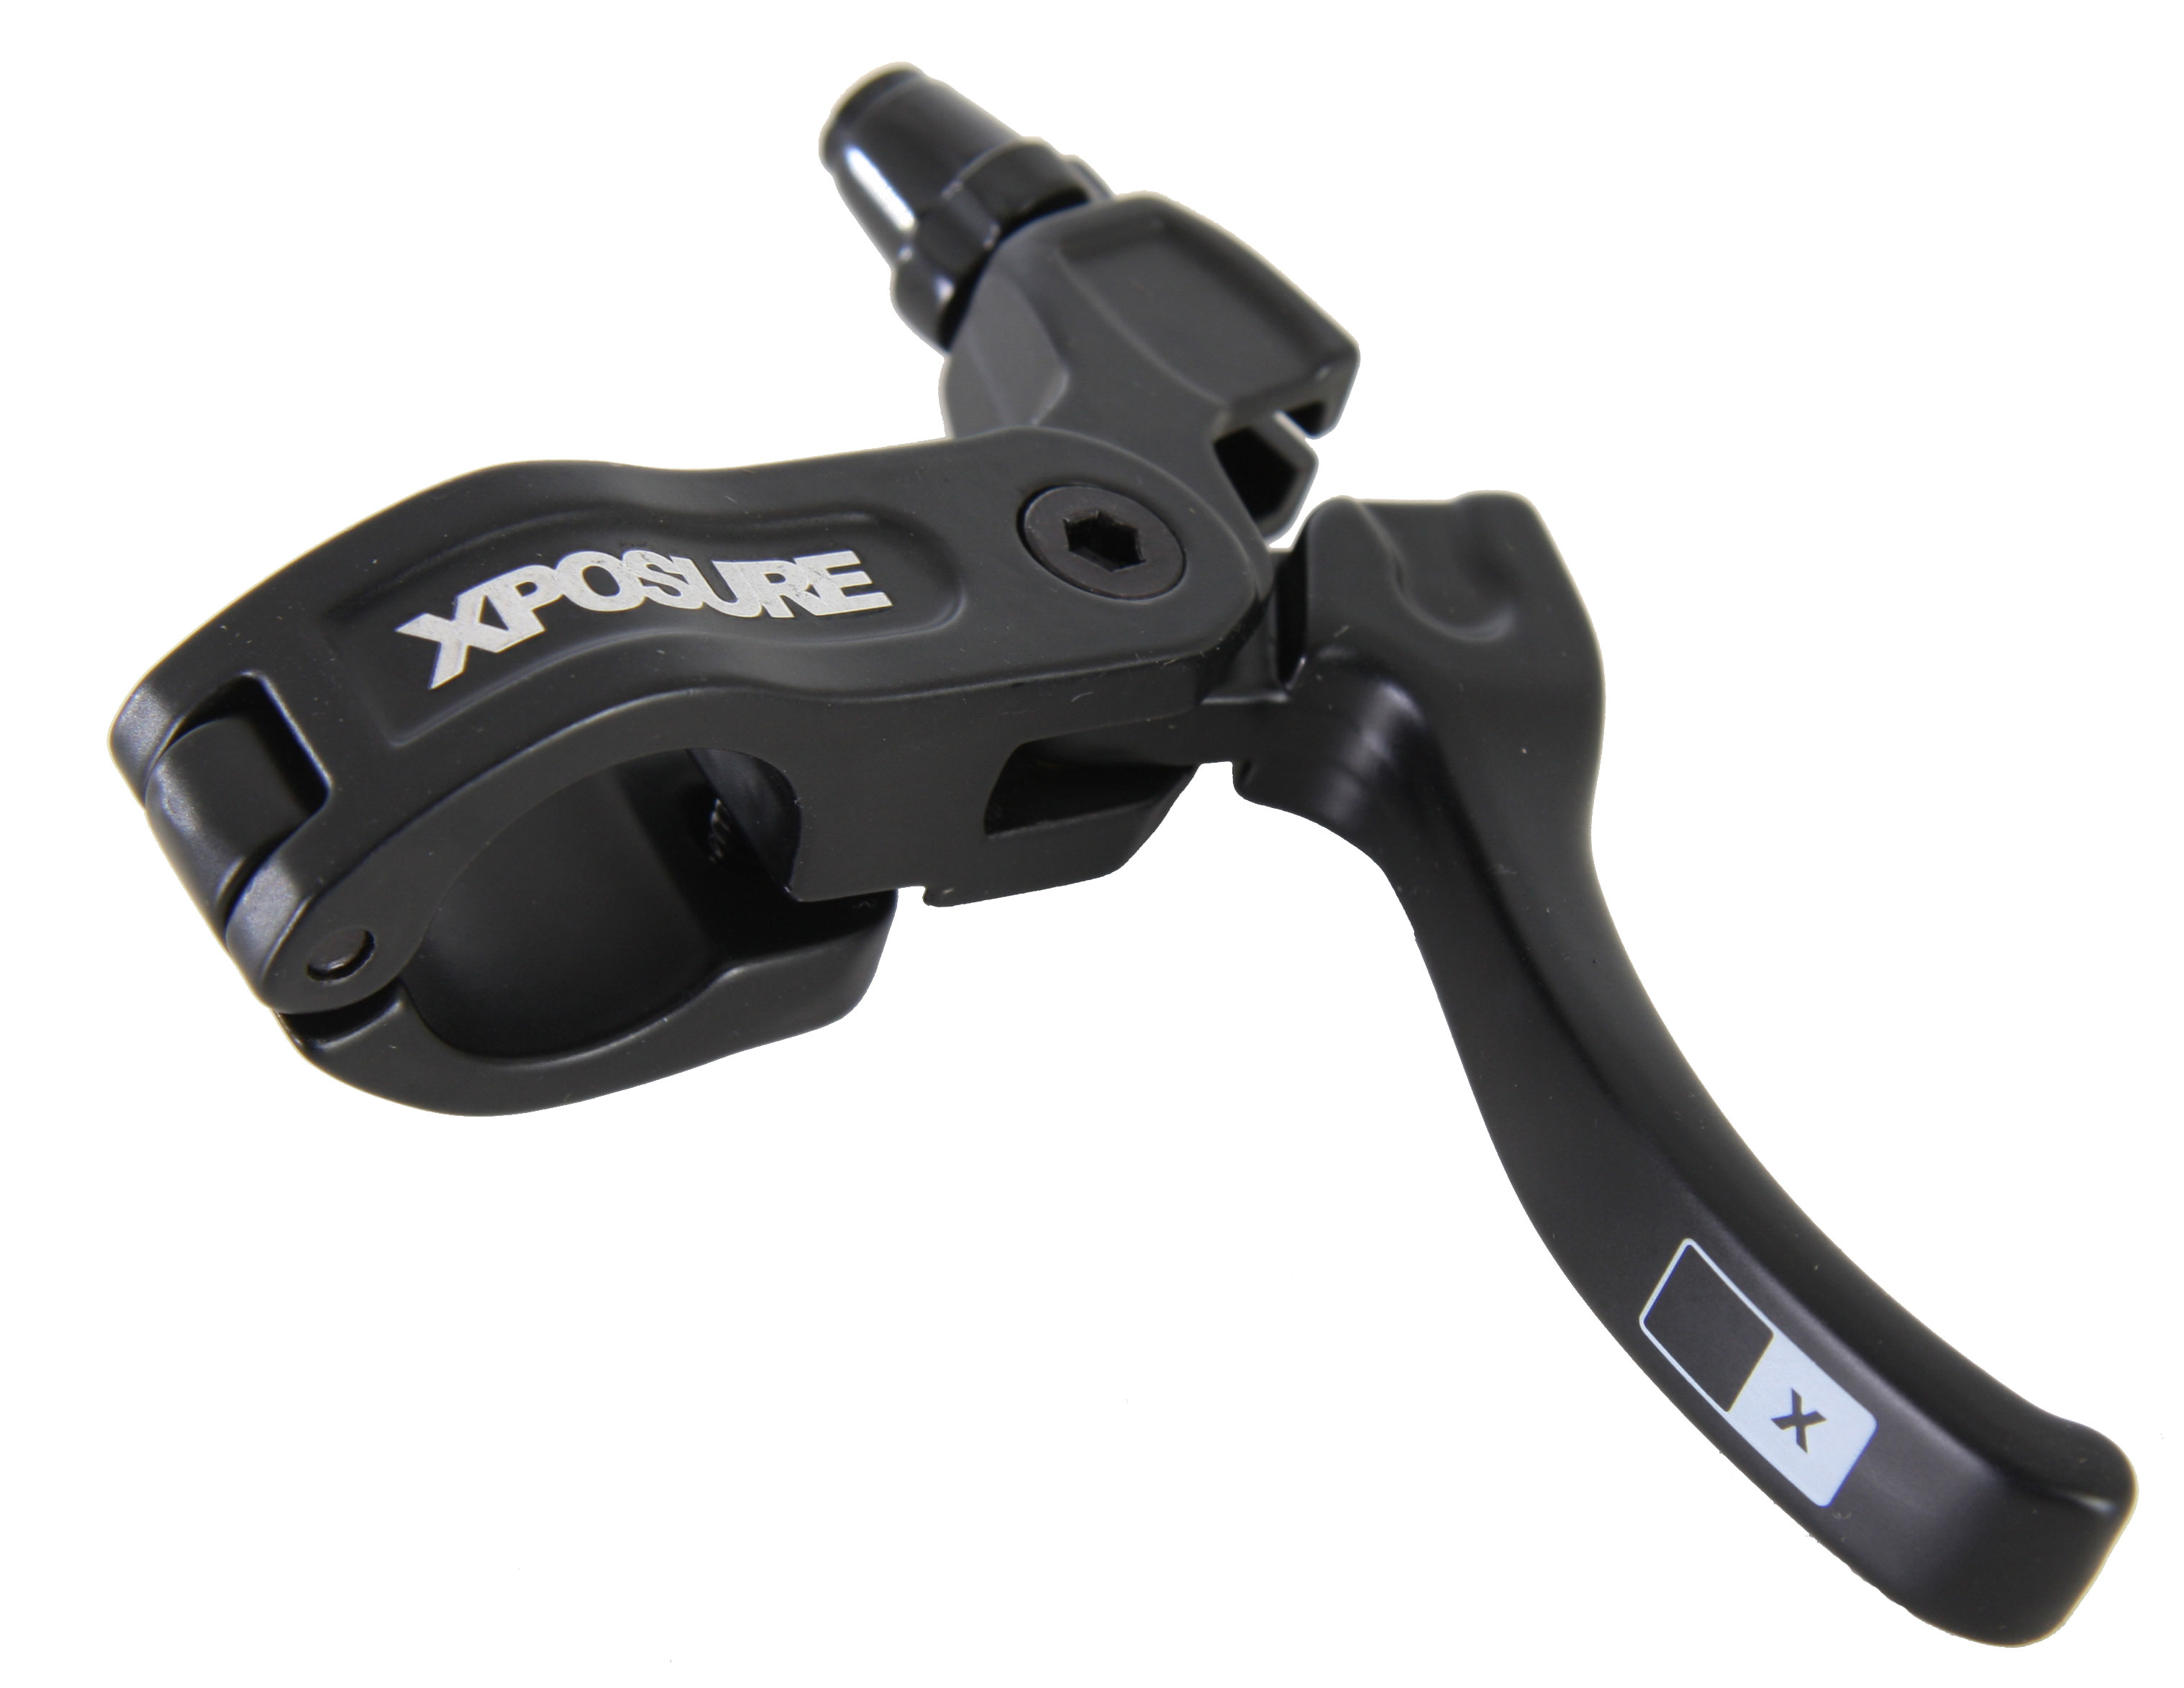 "BMX Designed in the UK, Xposure have an increasing range of parts to keep your bike looking fresh. Key Features of the Xposure High Bike Brake Lever Right Side Black: 2 finger design Forged construction Hard anodized hardware Standard 7/8"" (22mm) clamp - $14.95"